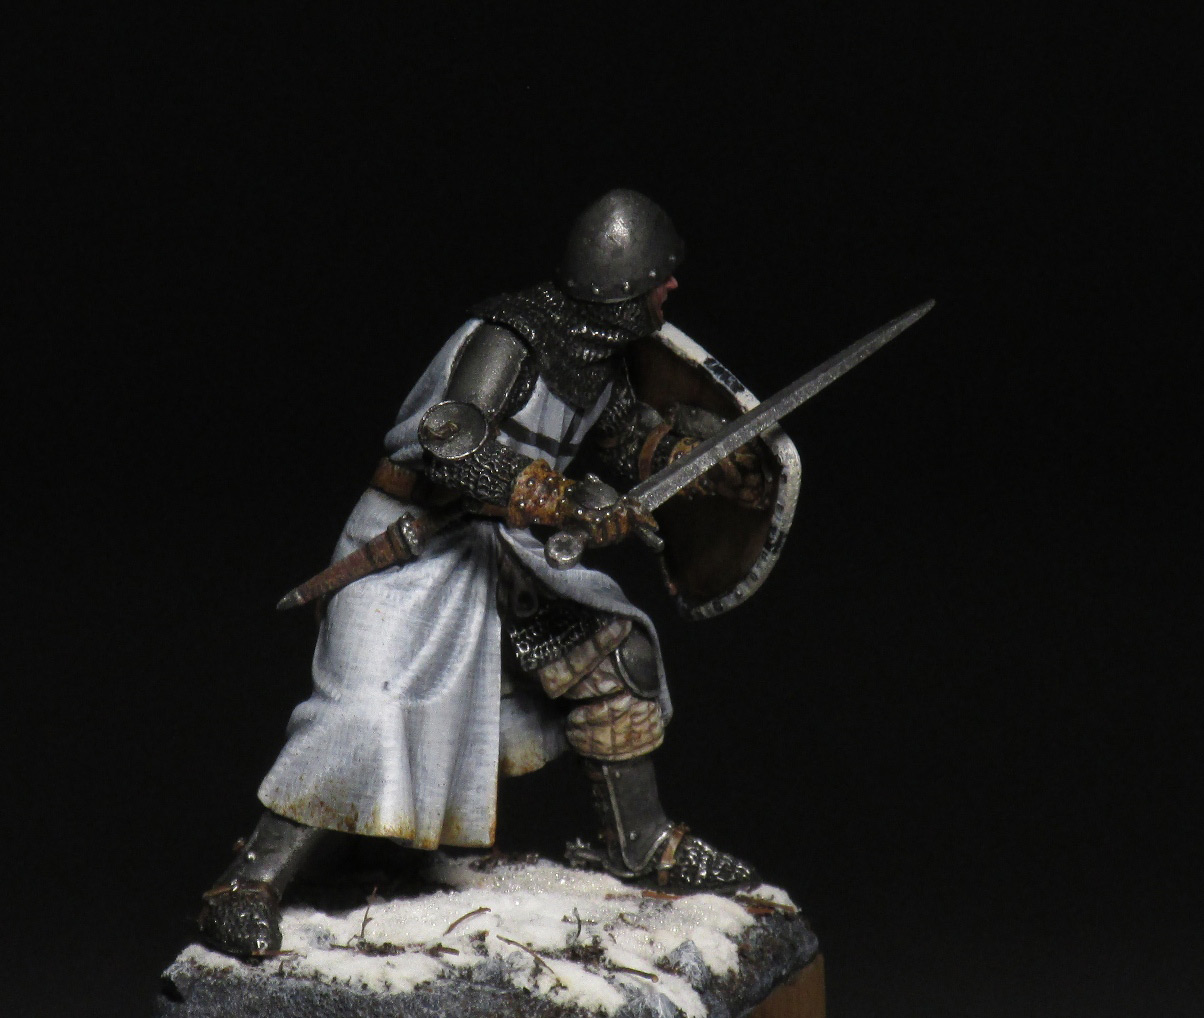 Figures: Teutonic knight, photo #8